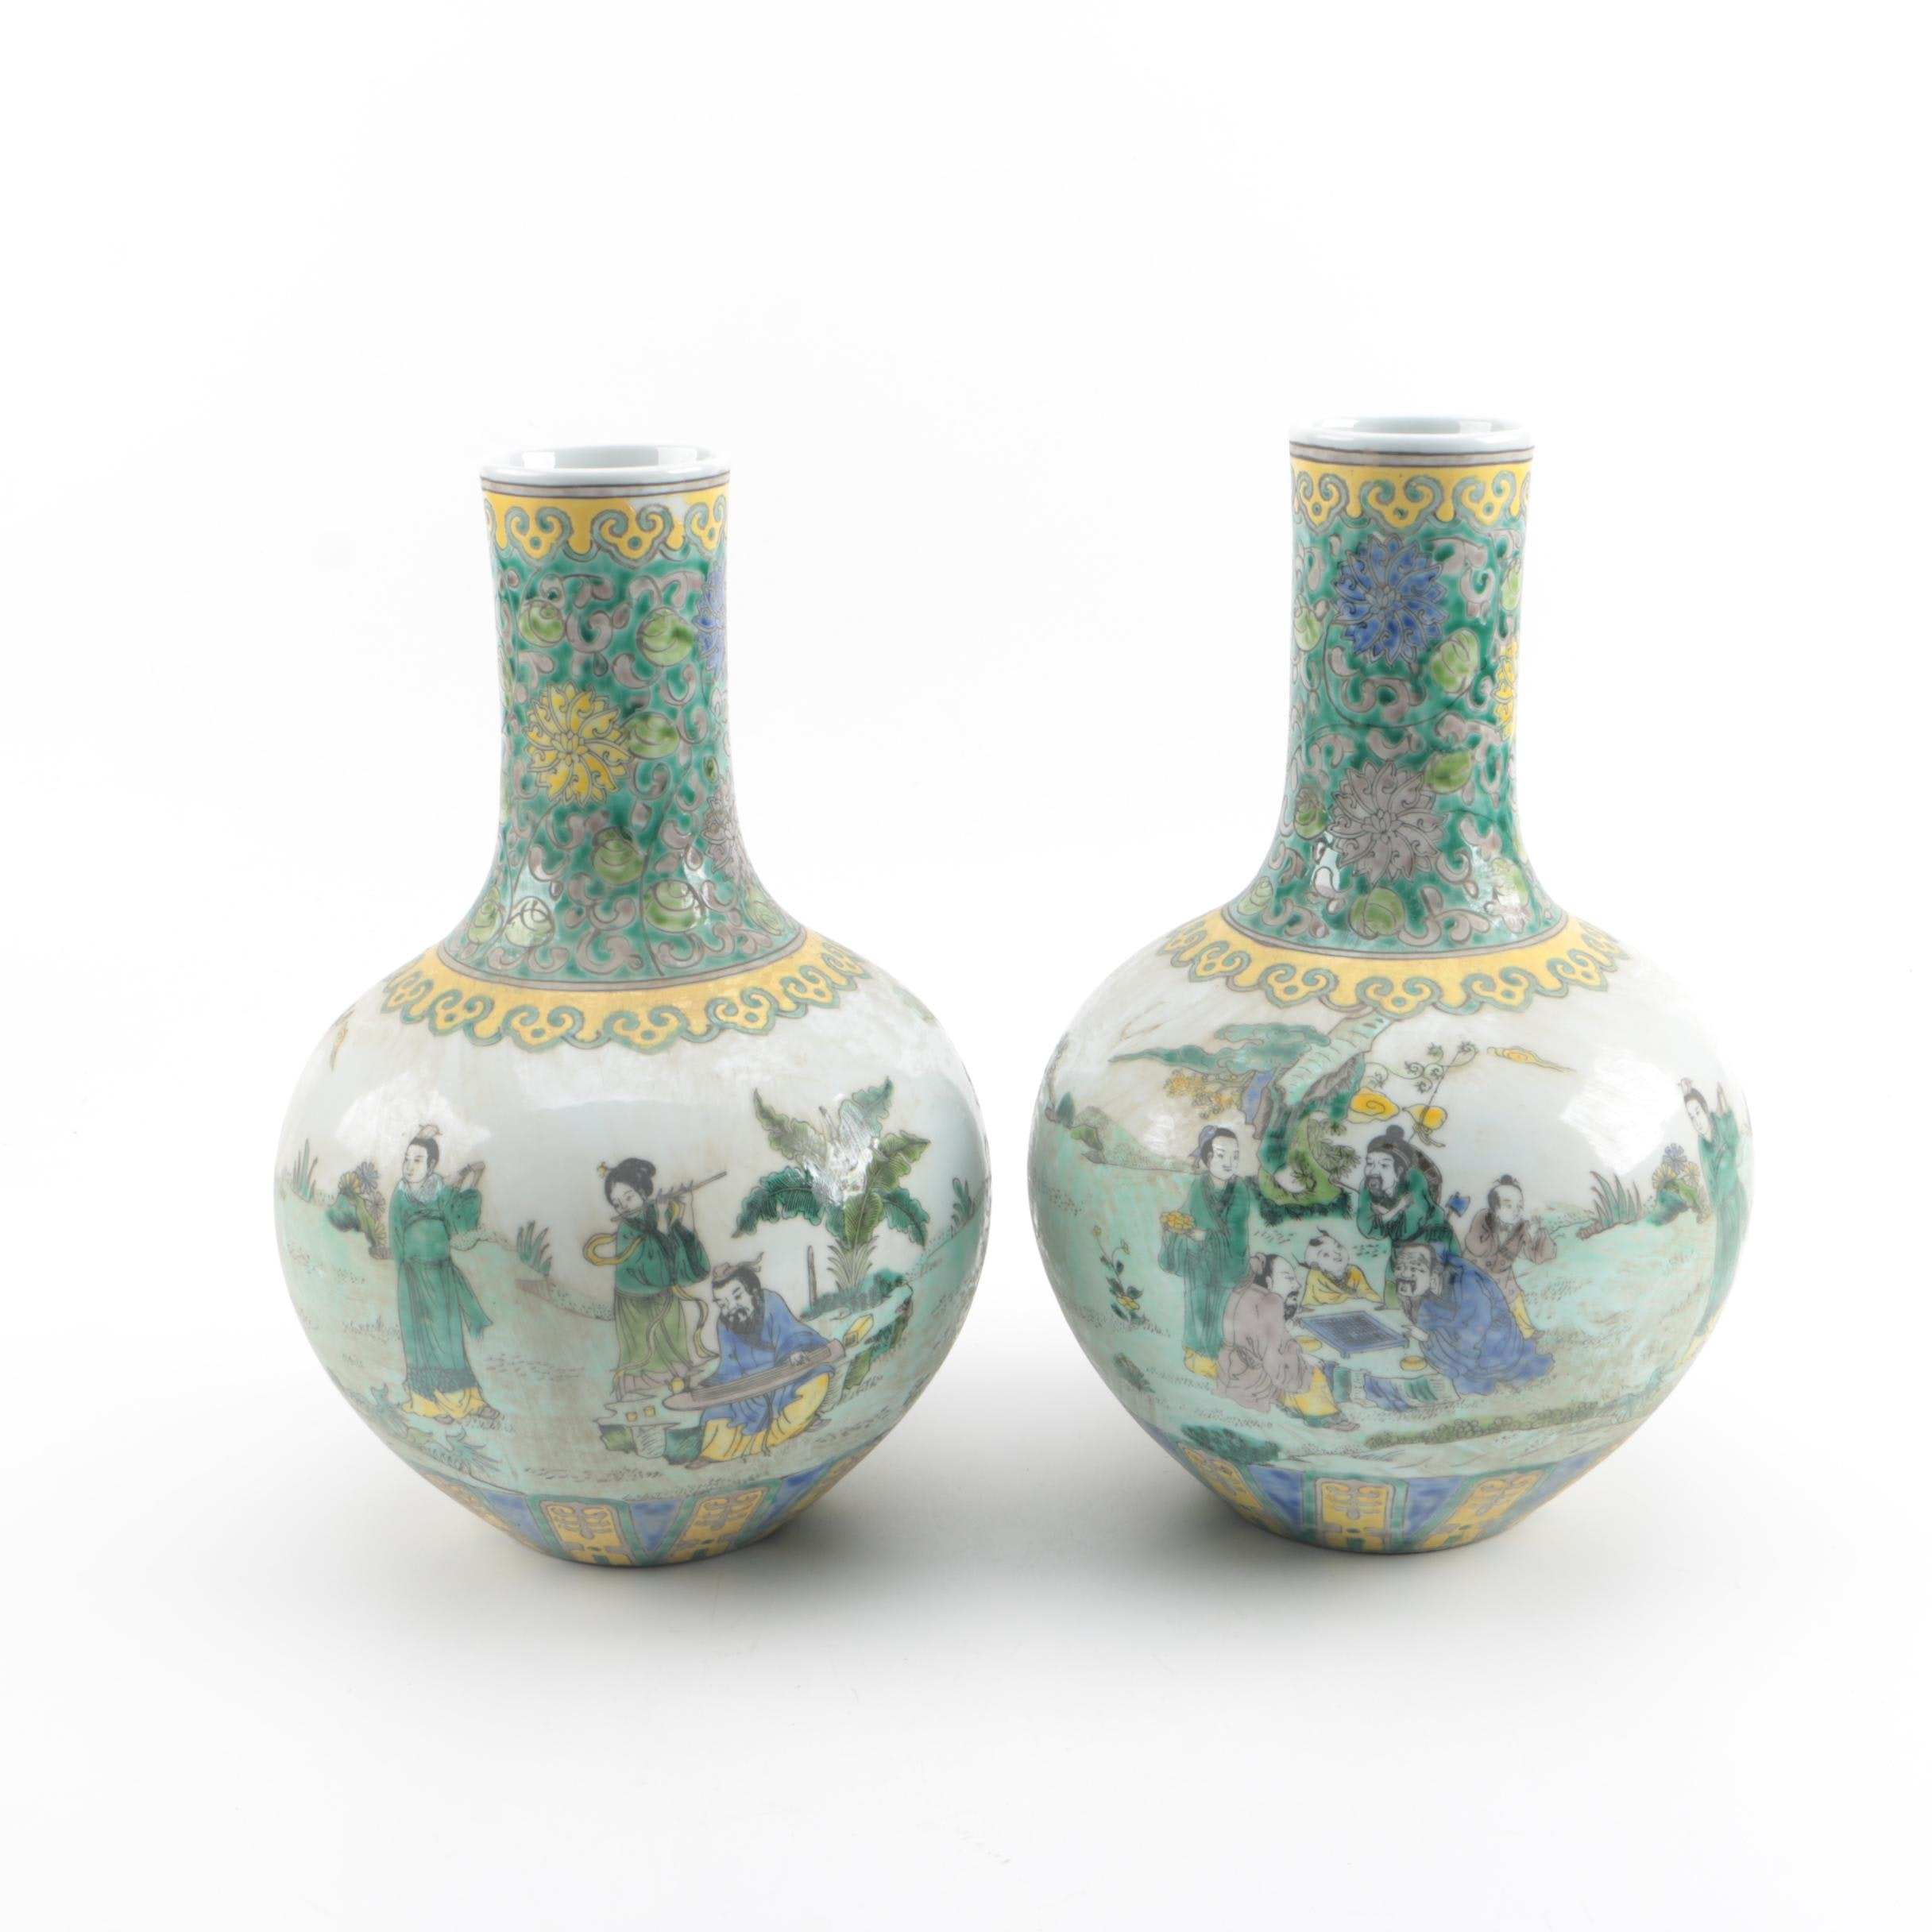 Chinese Hand-Painted Susancai Porcelain Tianqiu Bottle Vases